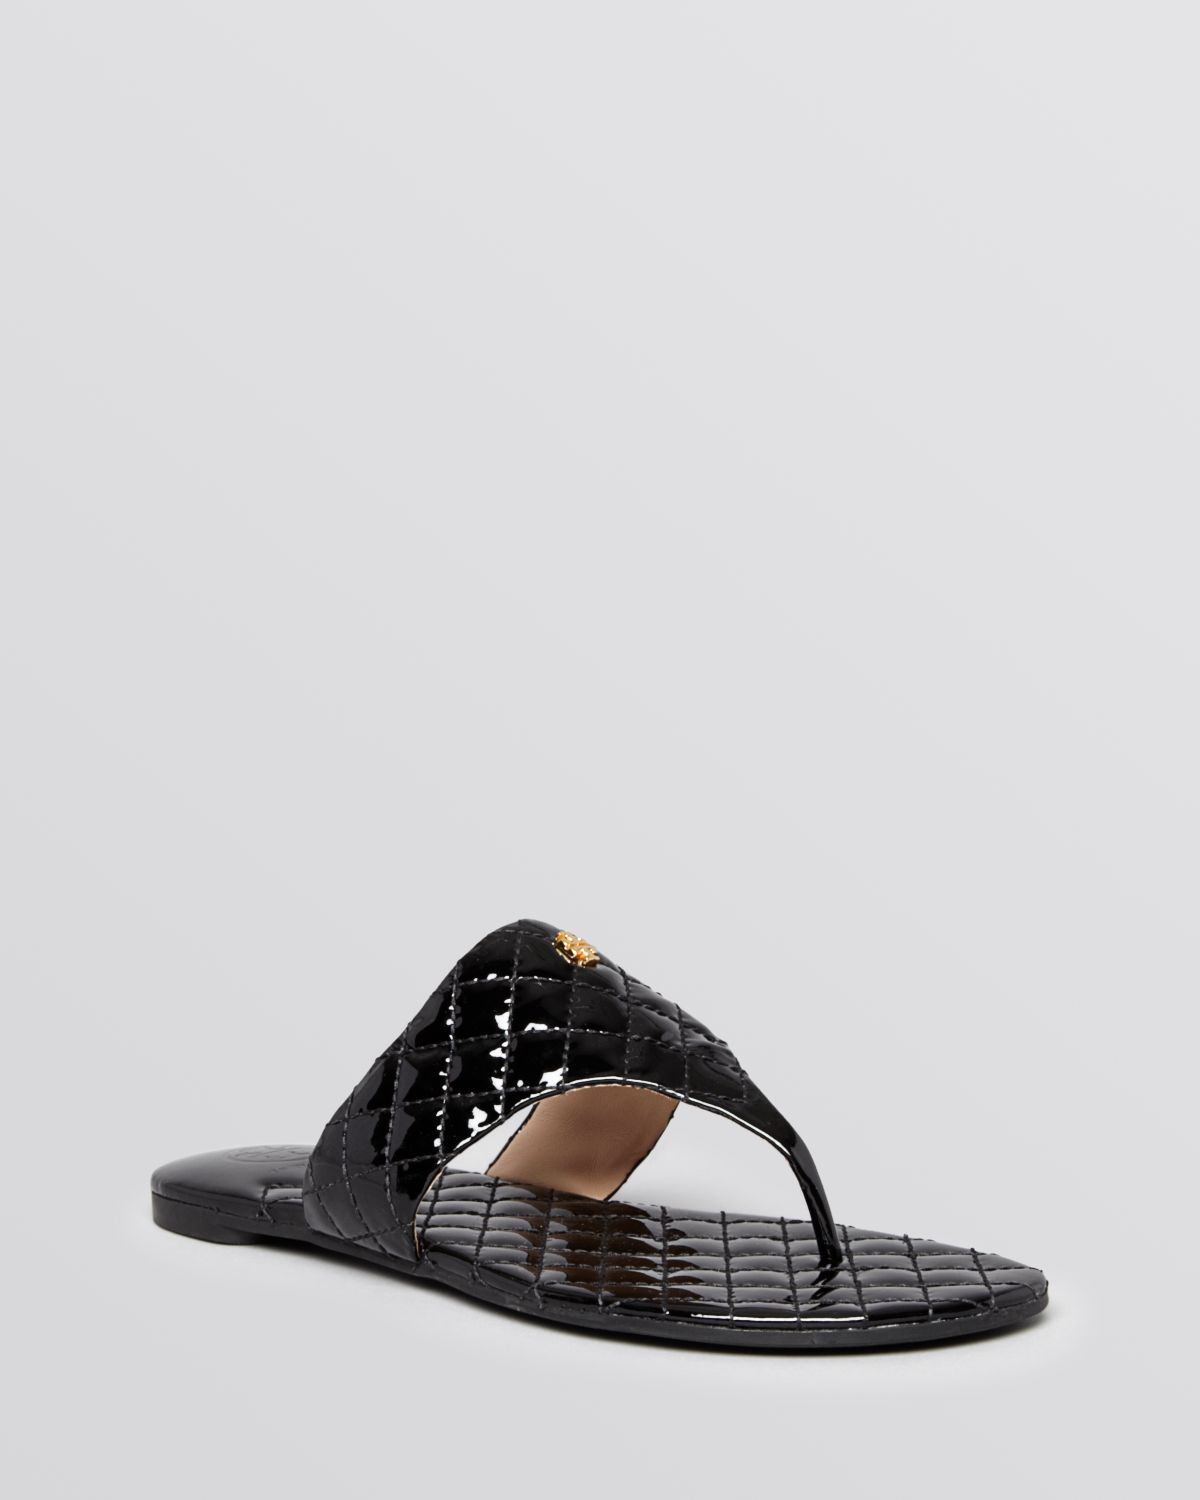 Tory Burch Flat Thong Sandals Kent Quilted In Black | Lyst